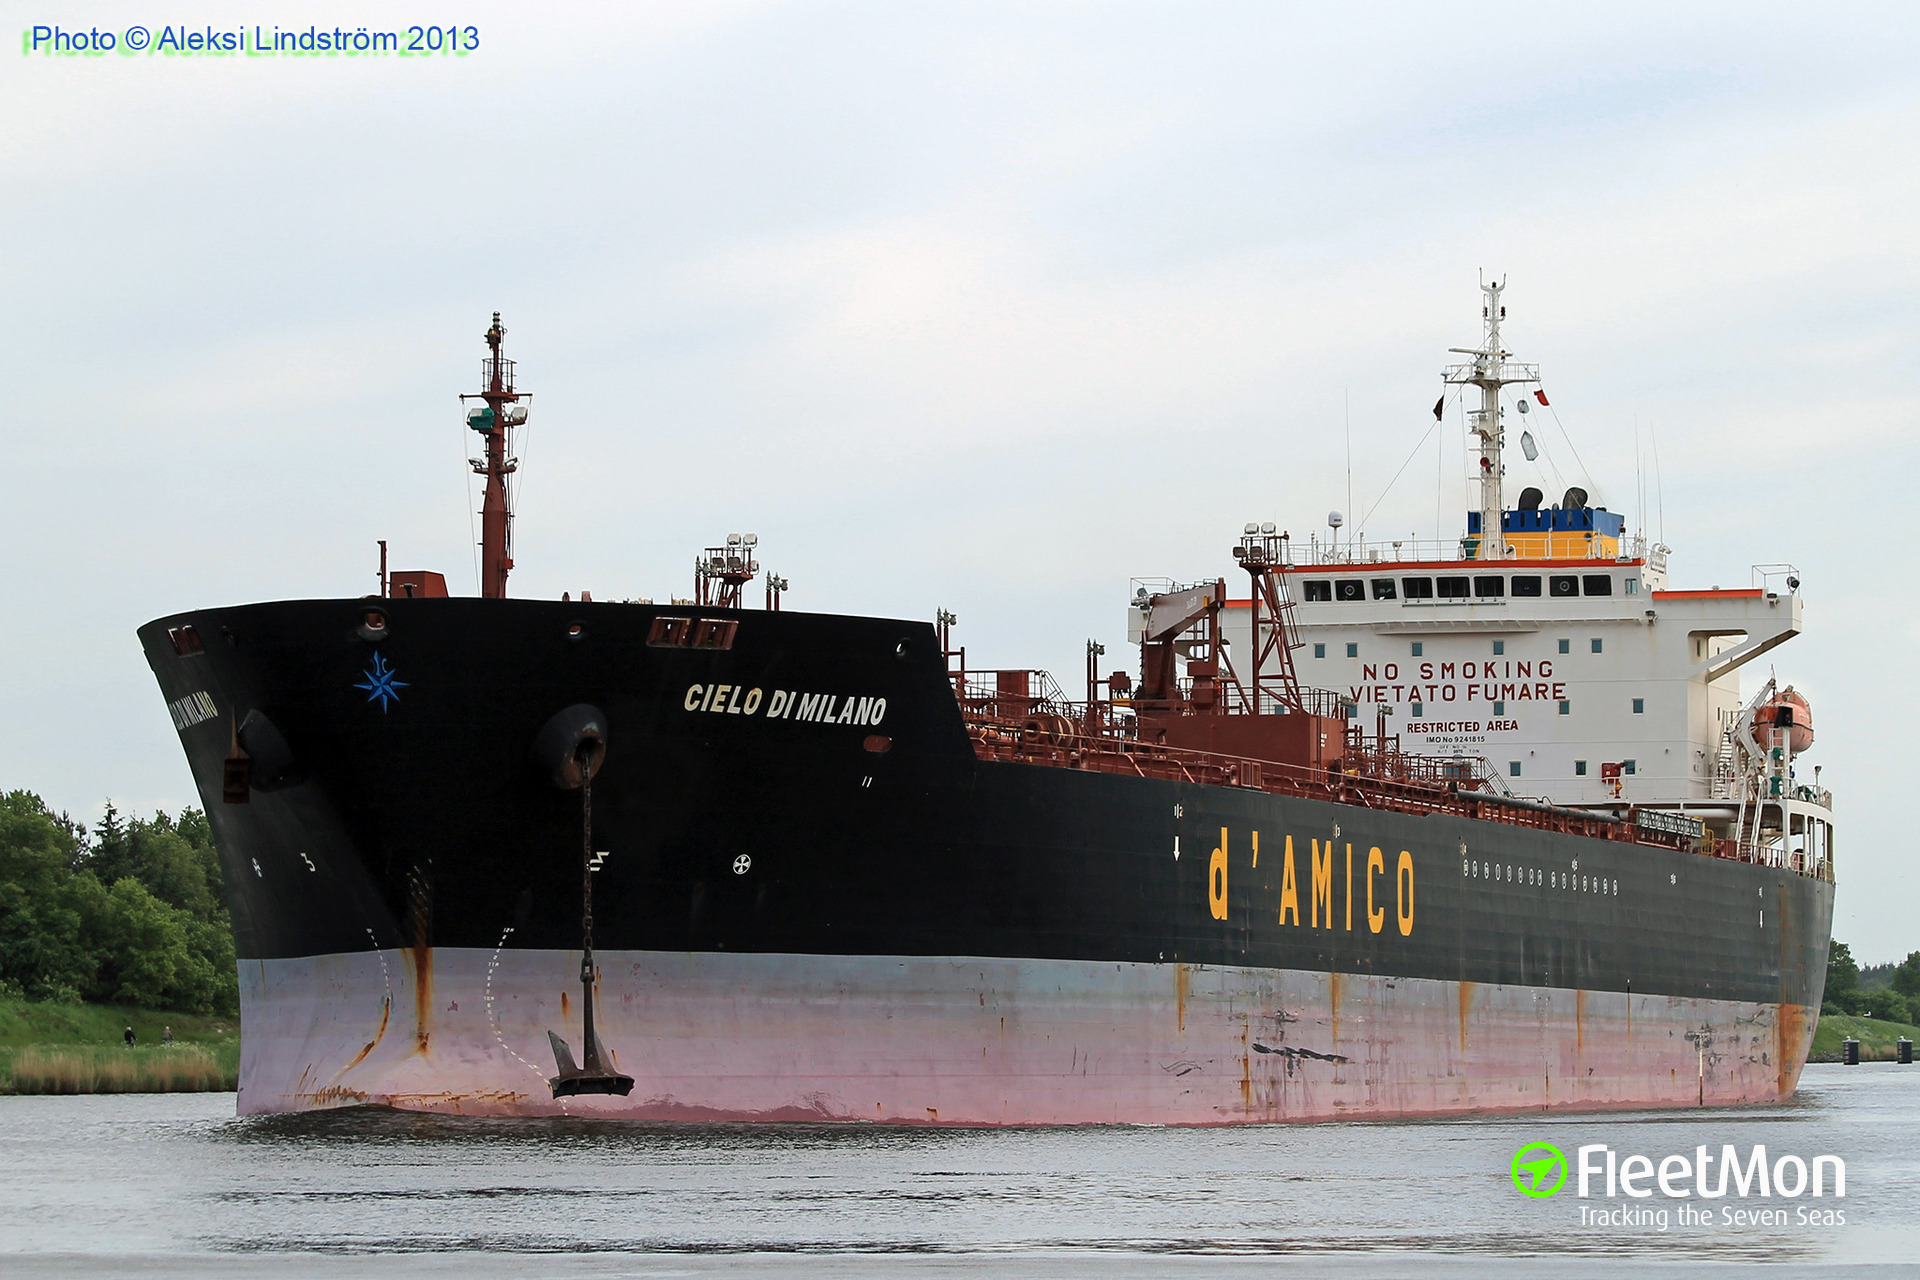 Tanker in full load stranded in Germany while Ghana companies accuse each other